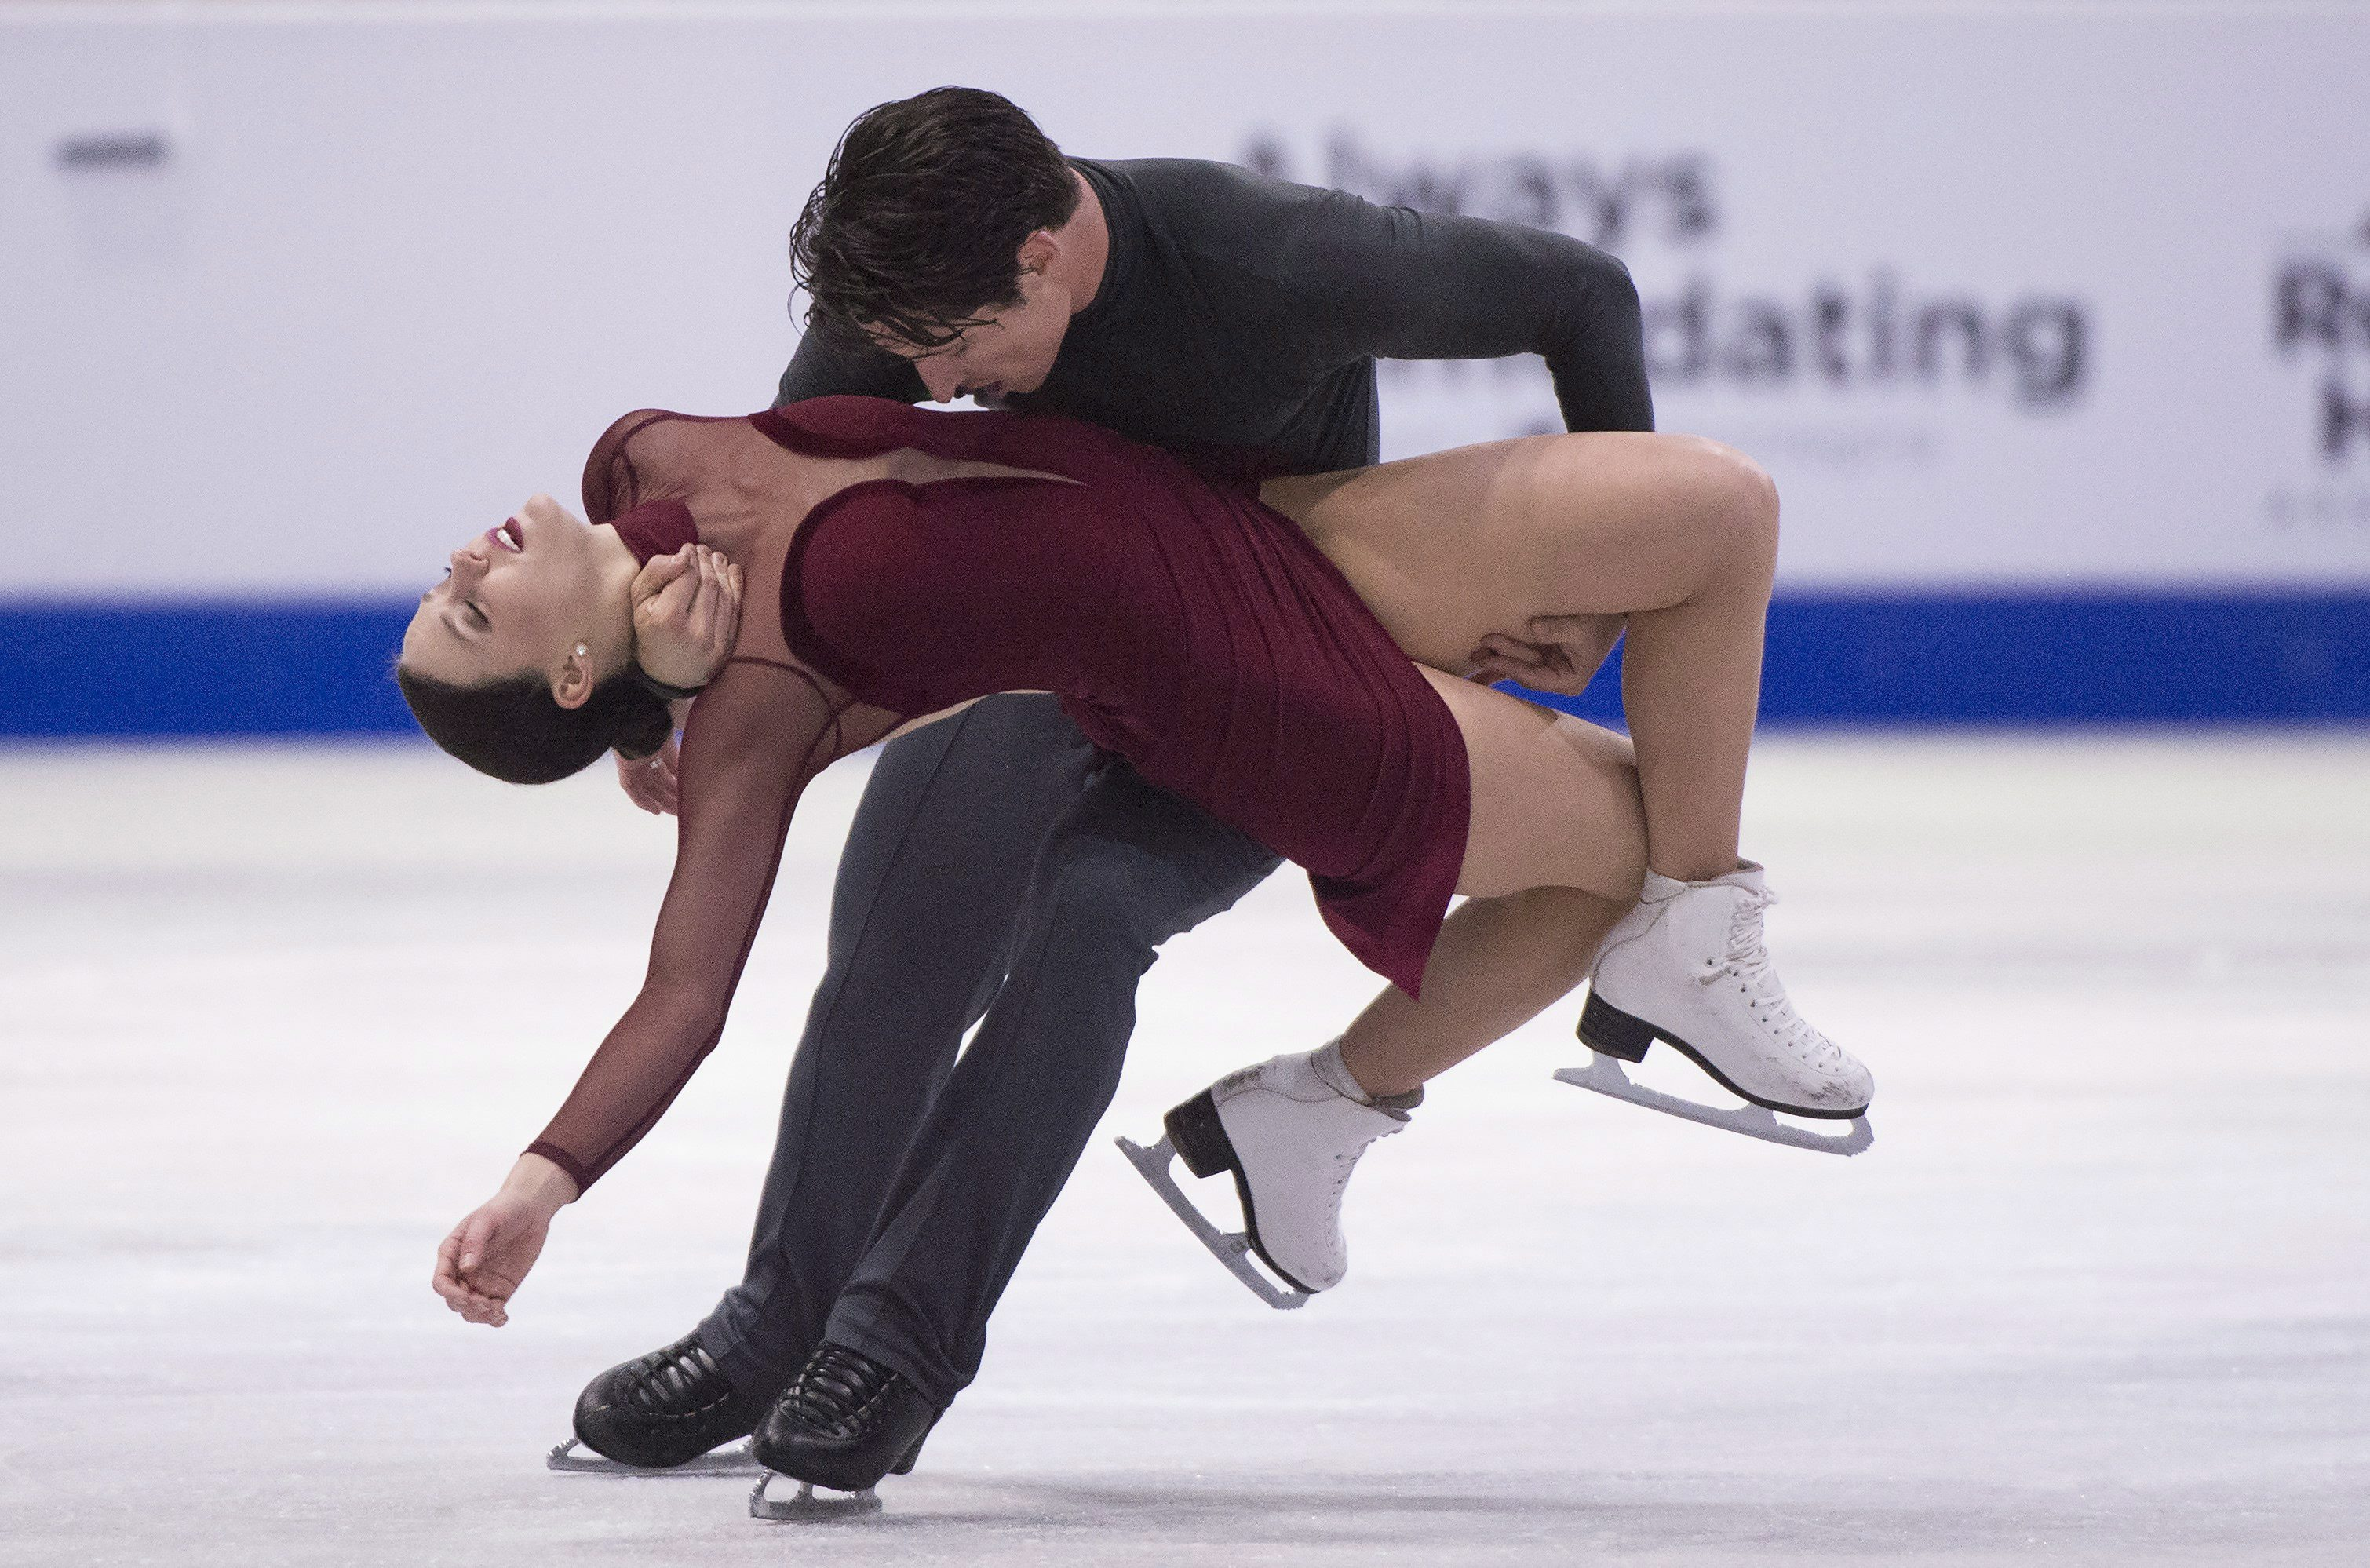 Team Canada - Tessa Virtue and Scott Moir - Skate Canada International